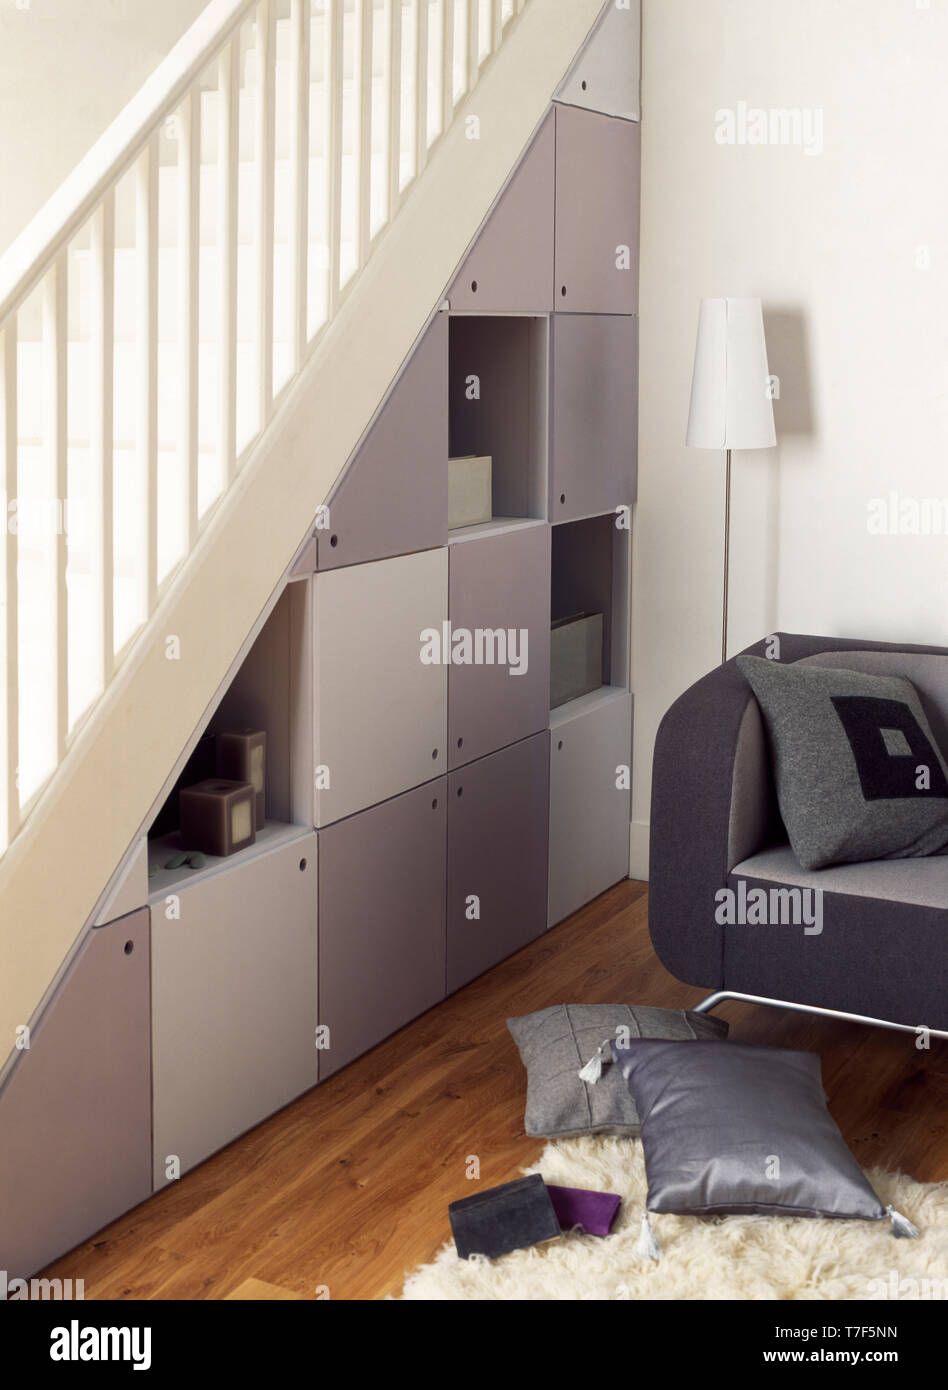 Under Stairs Storage High Resolution Stock Photography And Images Alamy